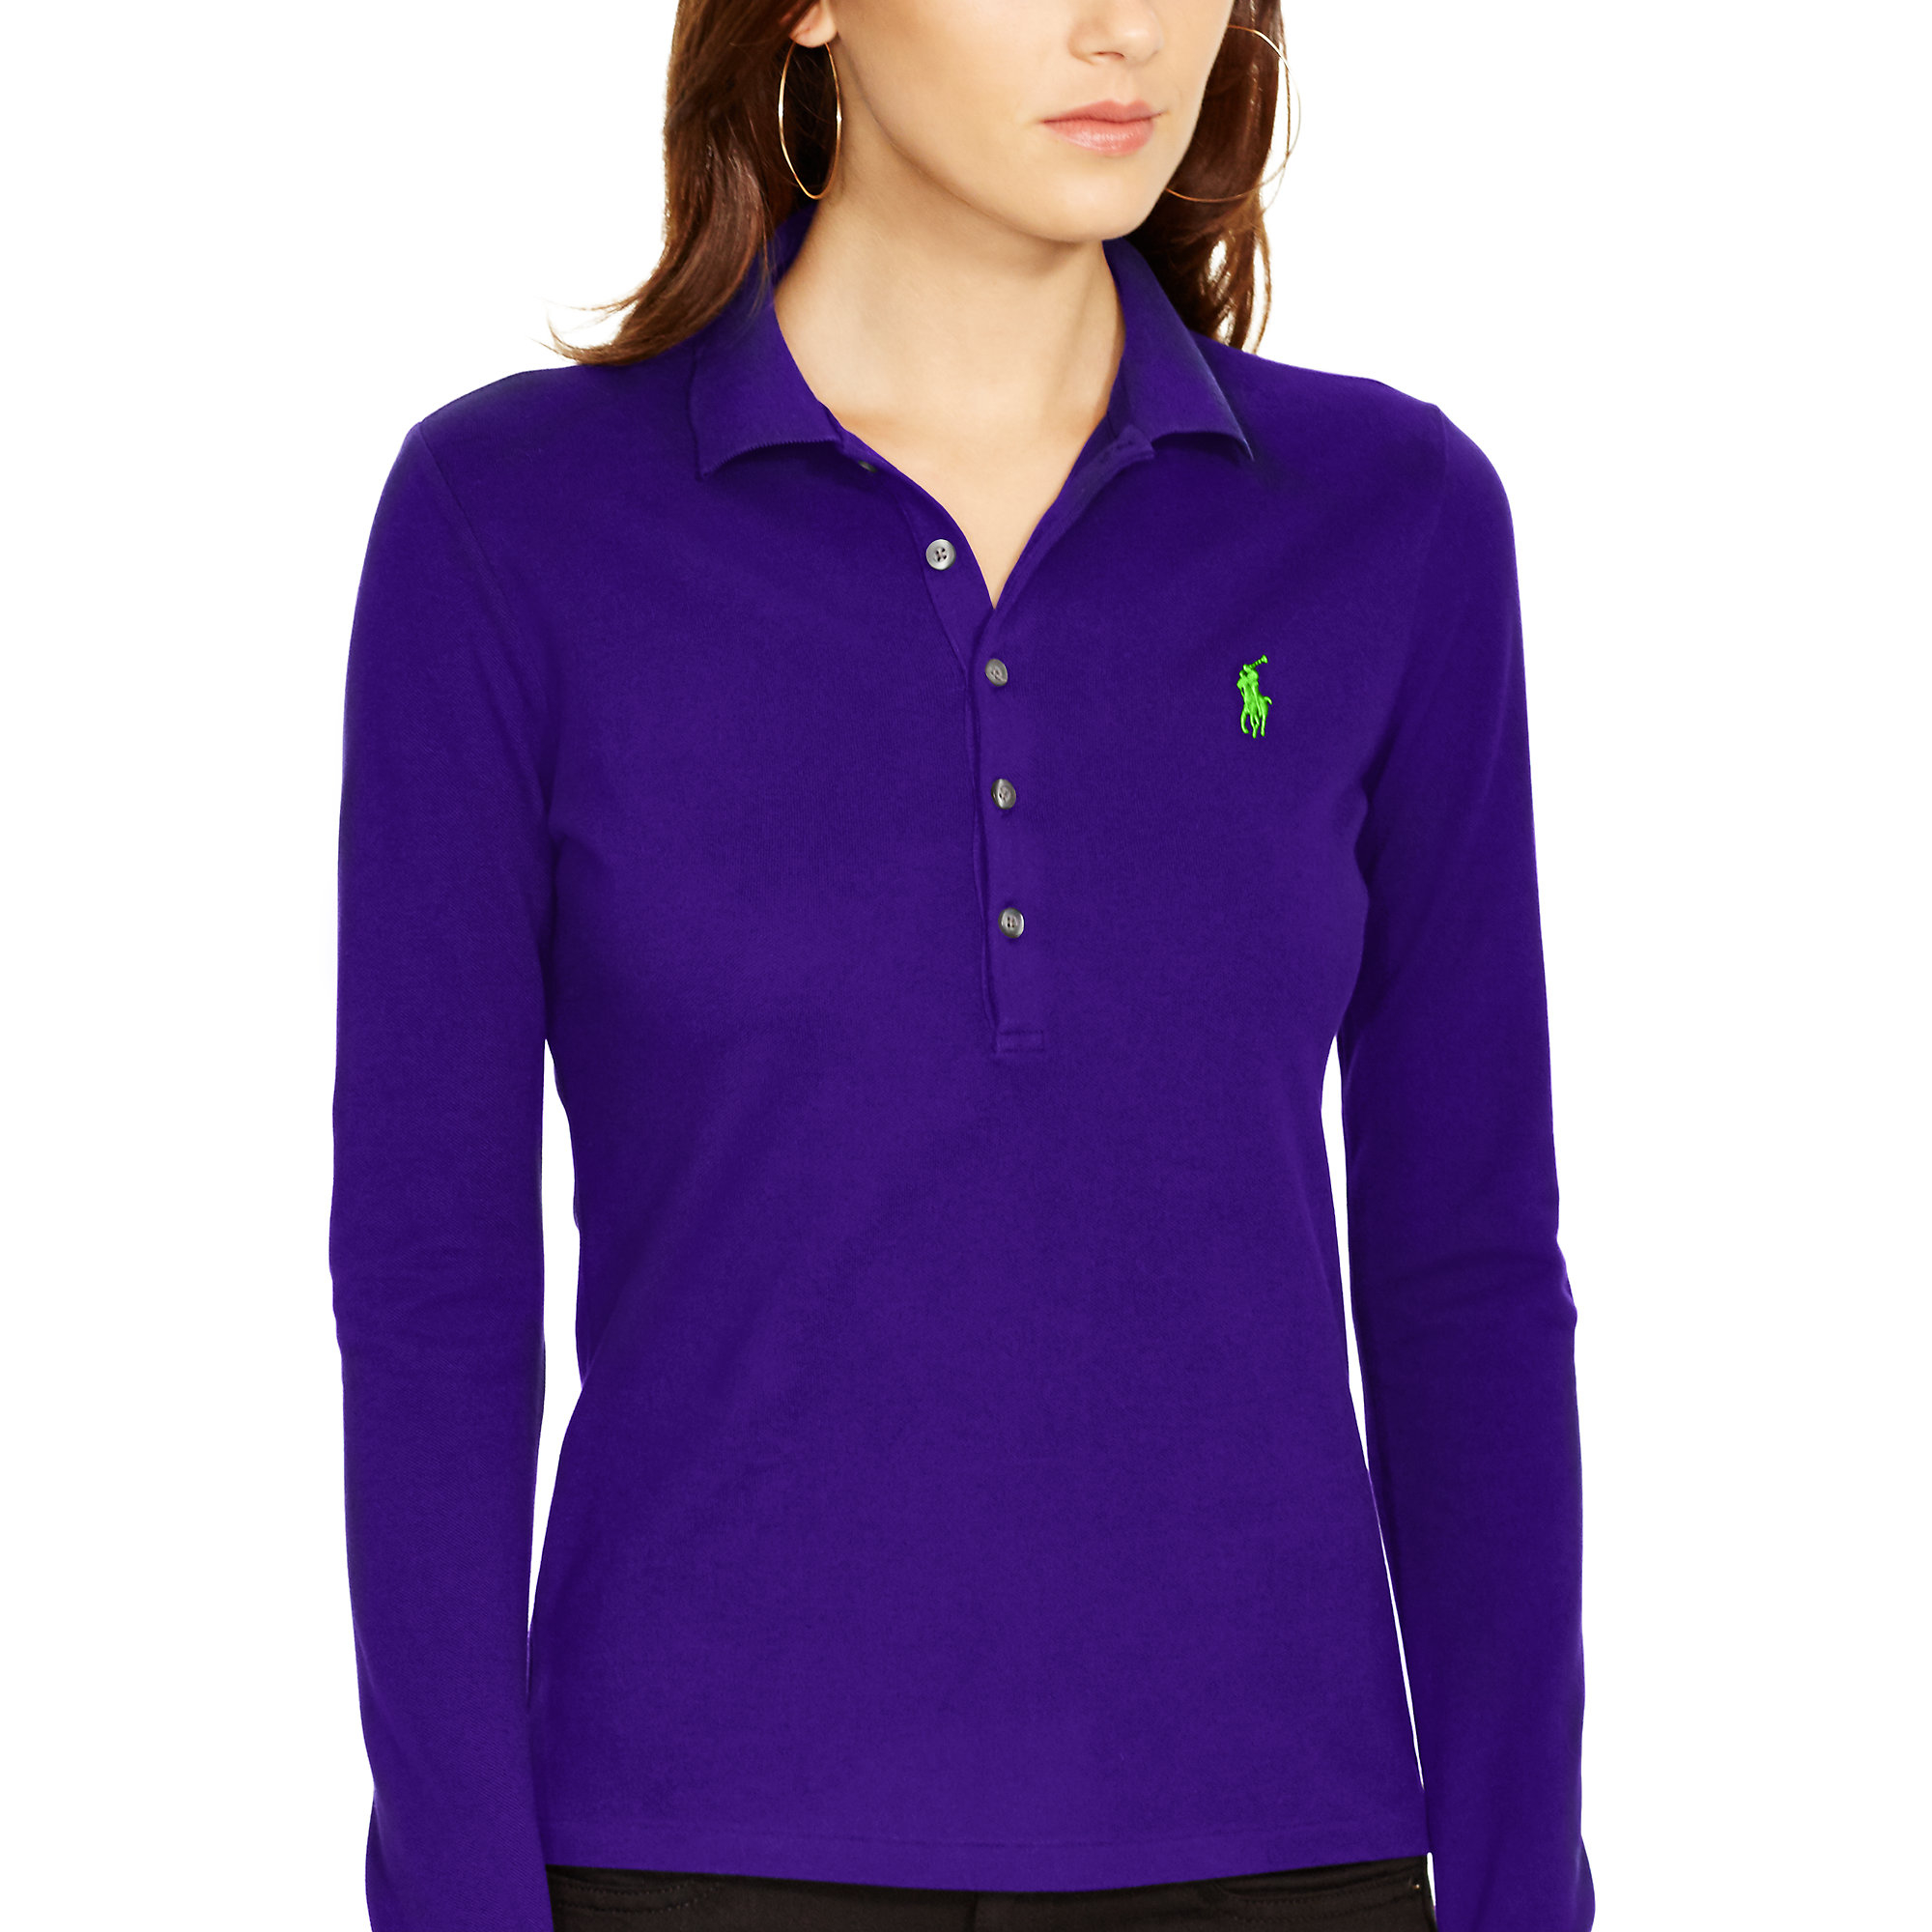 Polo ralph lauren long sleeve stretch polo in purple lyst for Long sleeve purple polo shirt